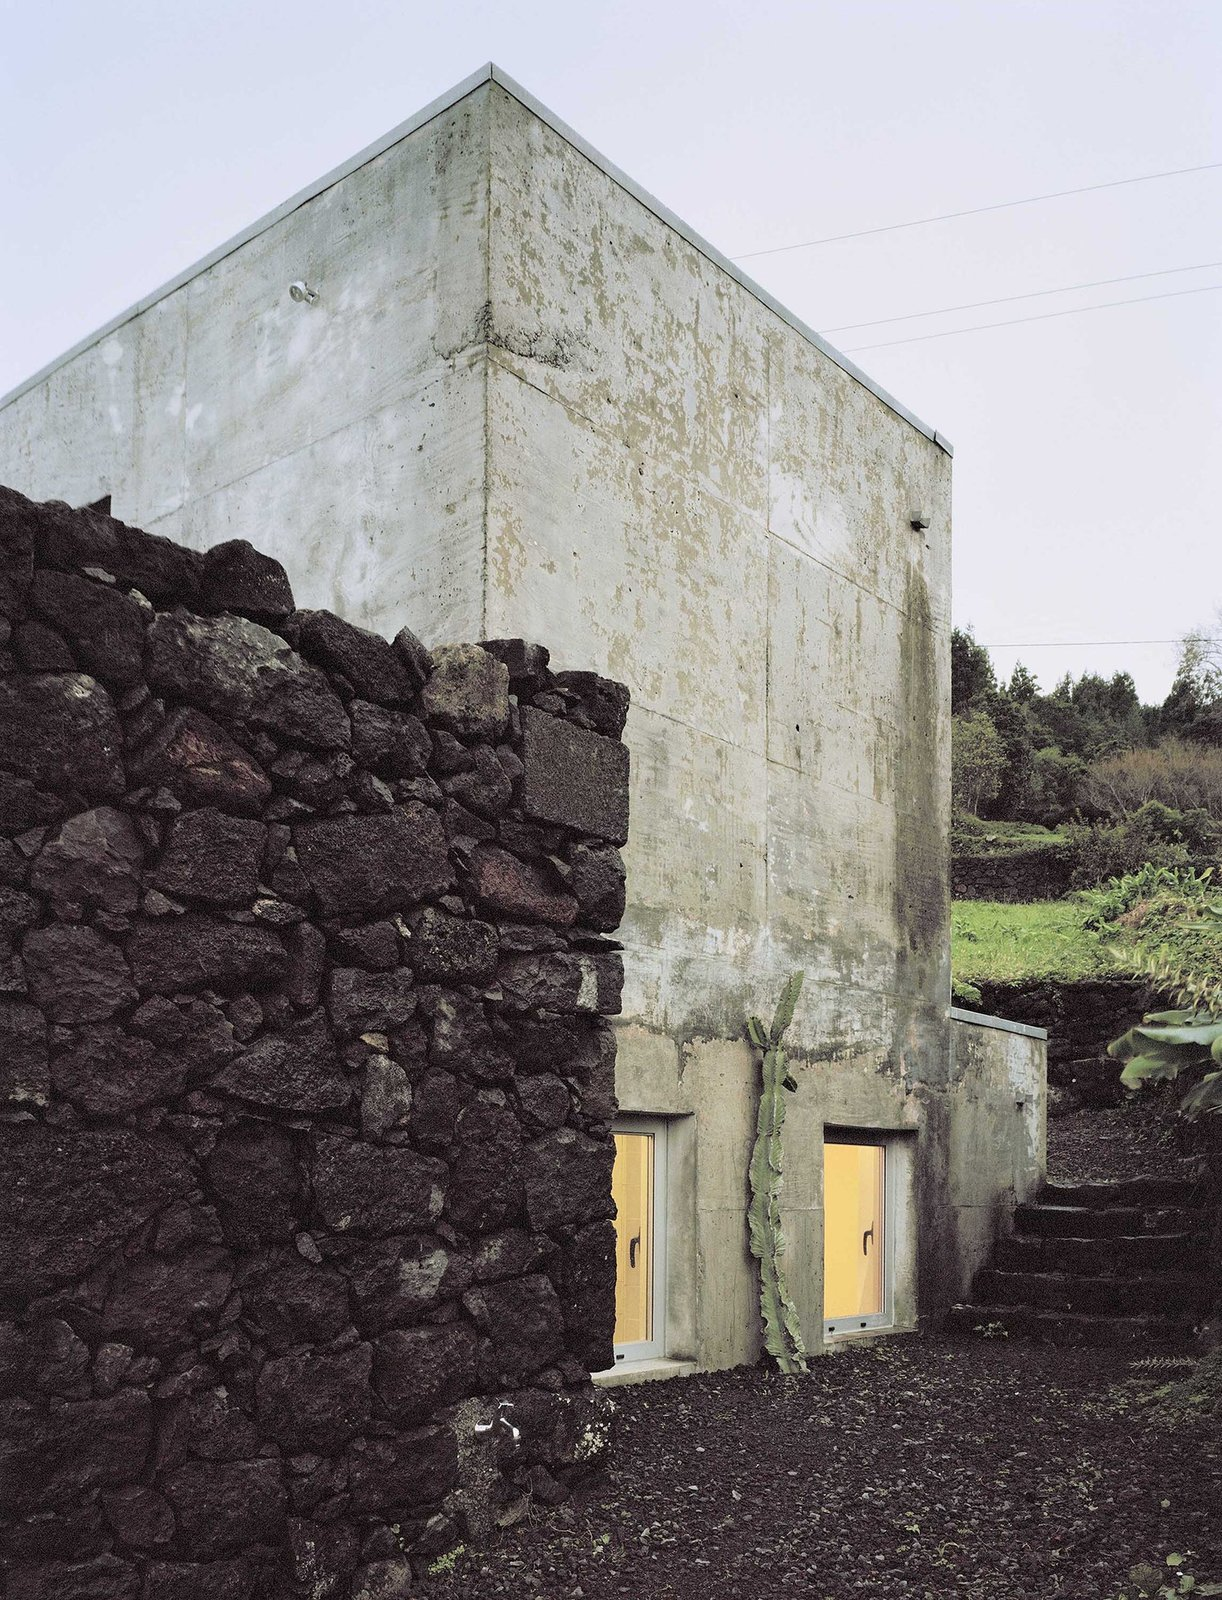 The concrete structure was designed to fit within the existing dark volcanic rock walls. Rising From the Ruins: Homes Built on Architectural Remains - Photo 16 of 19